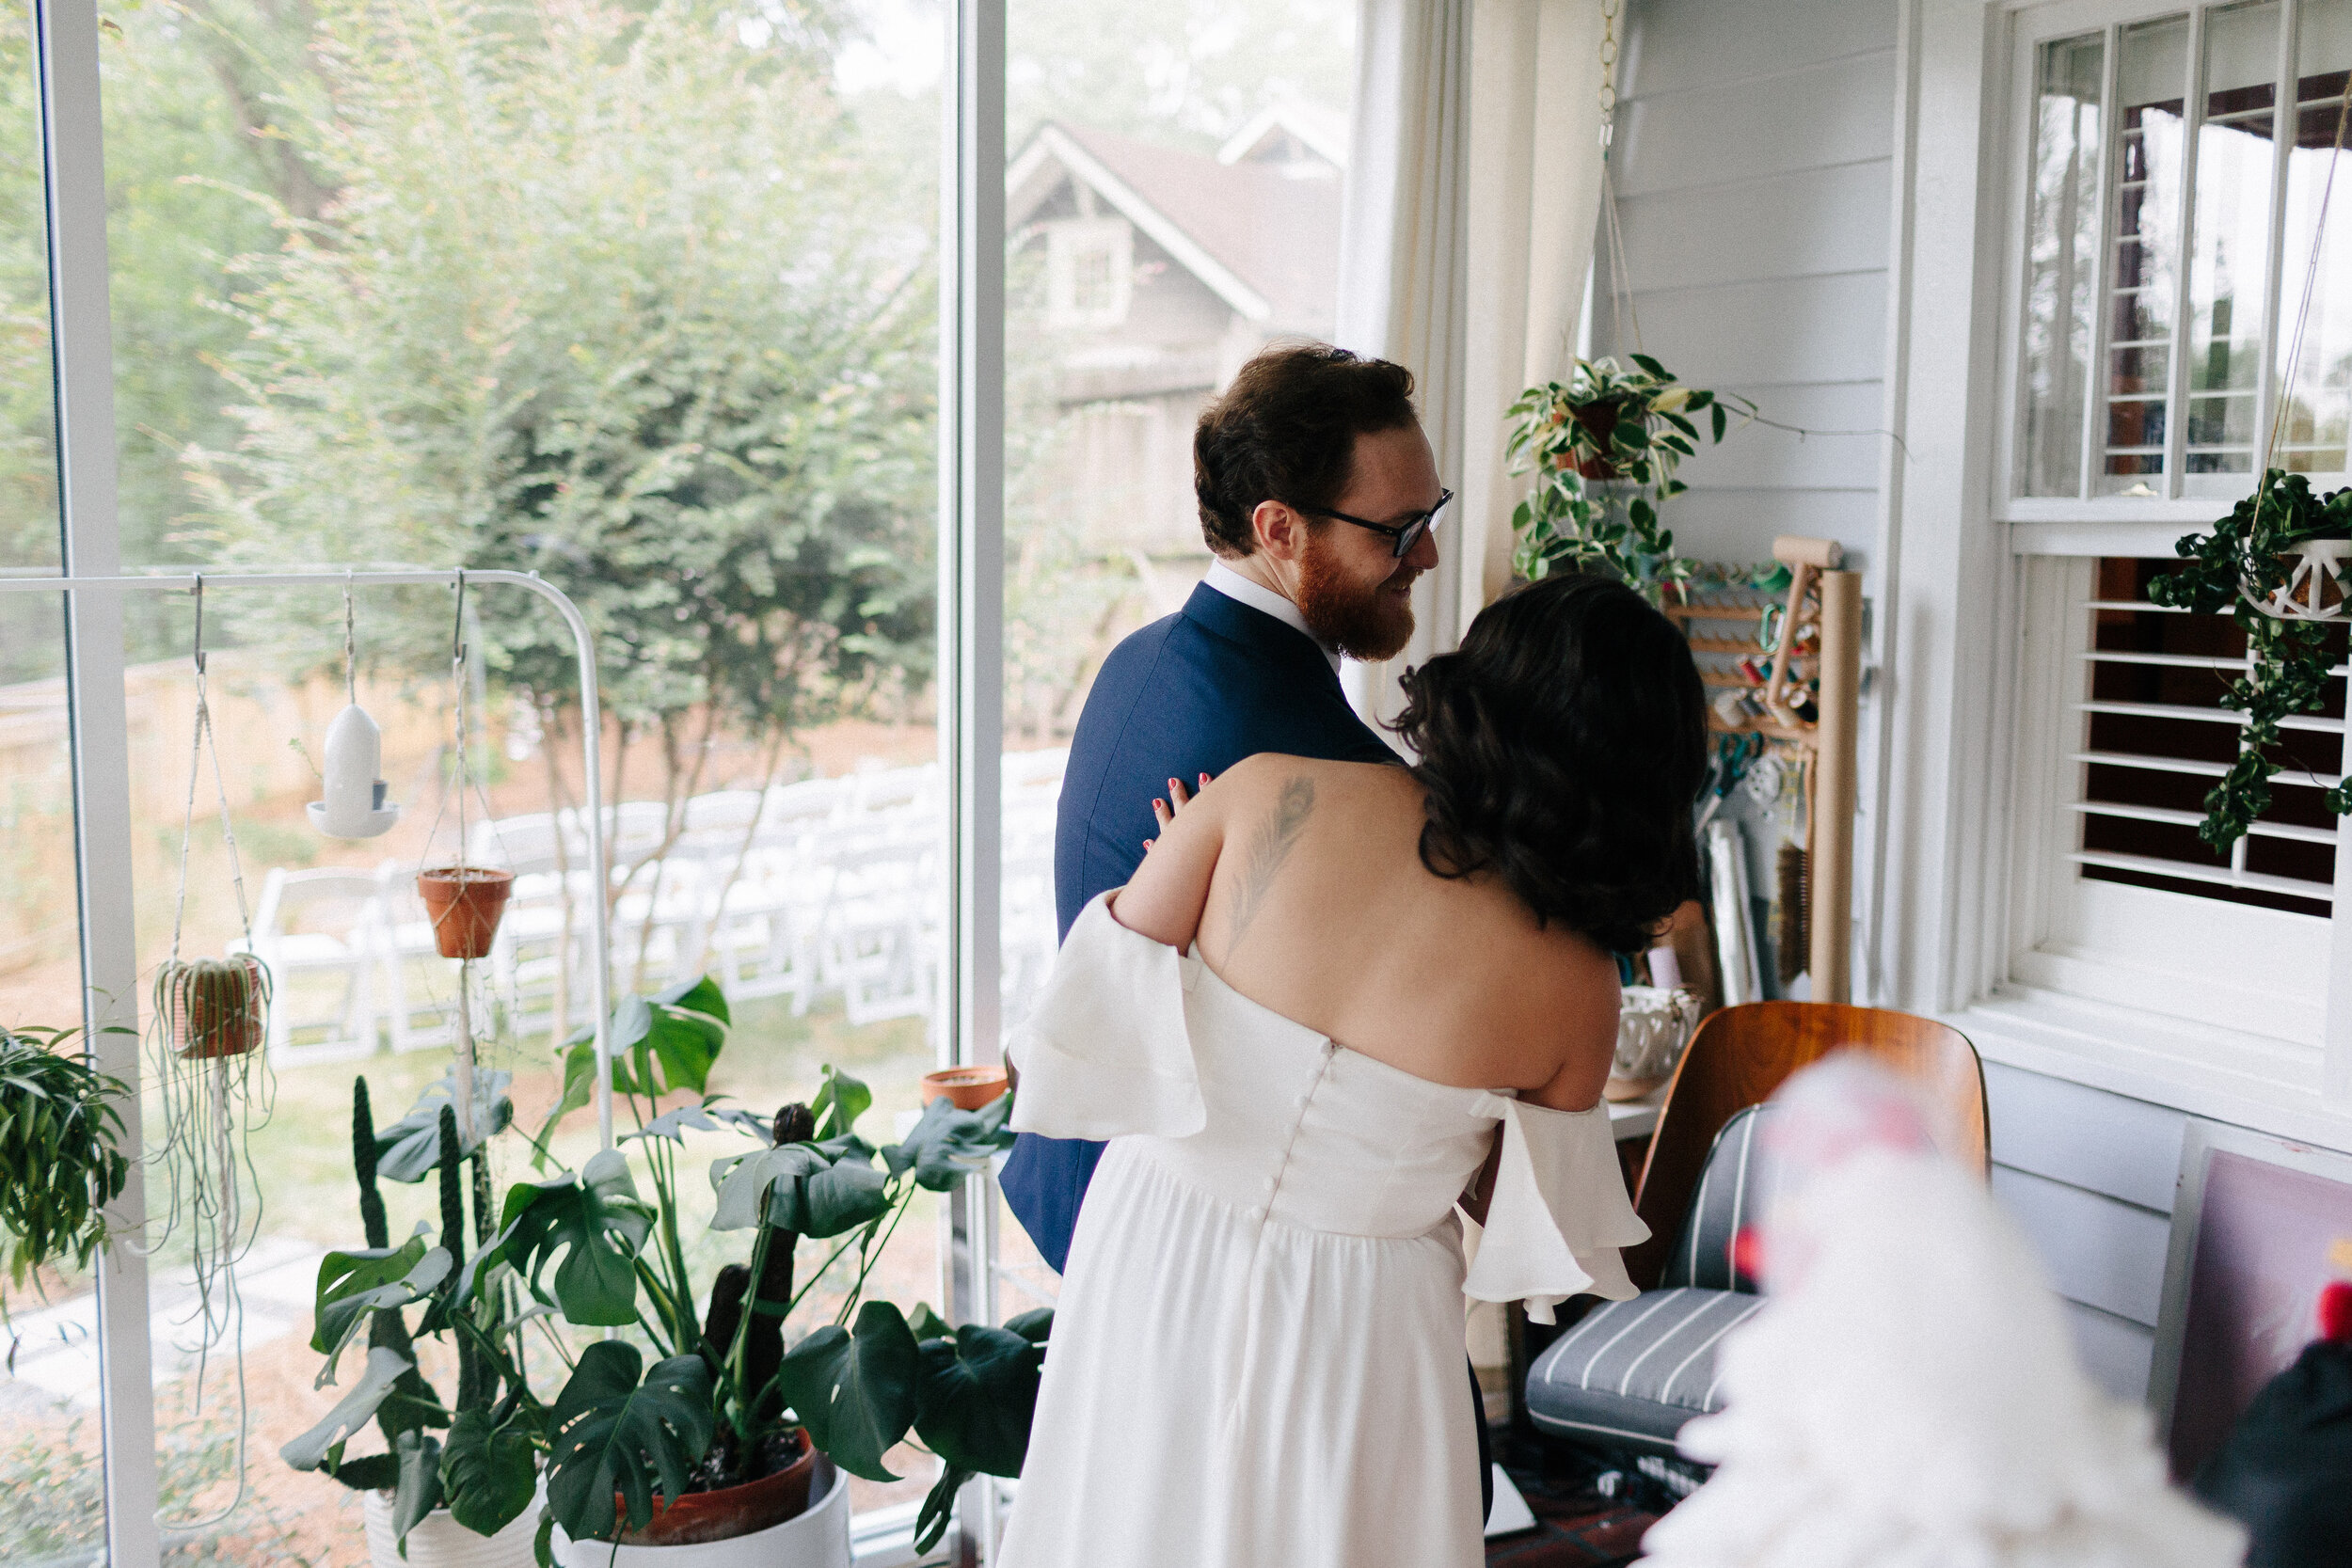 backyard_sun_in_my_belly_wedding_diy_at_home_atlanta_inman_park_arty_photographer_1142.jpg